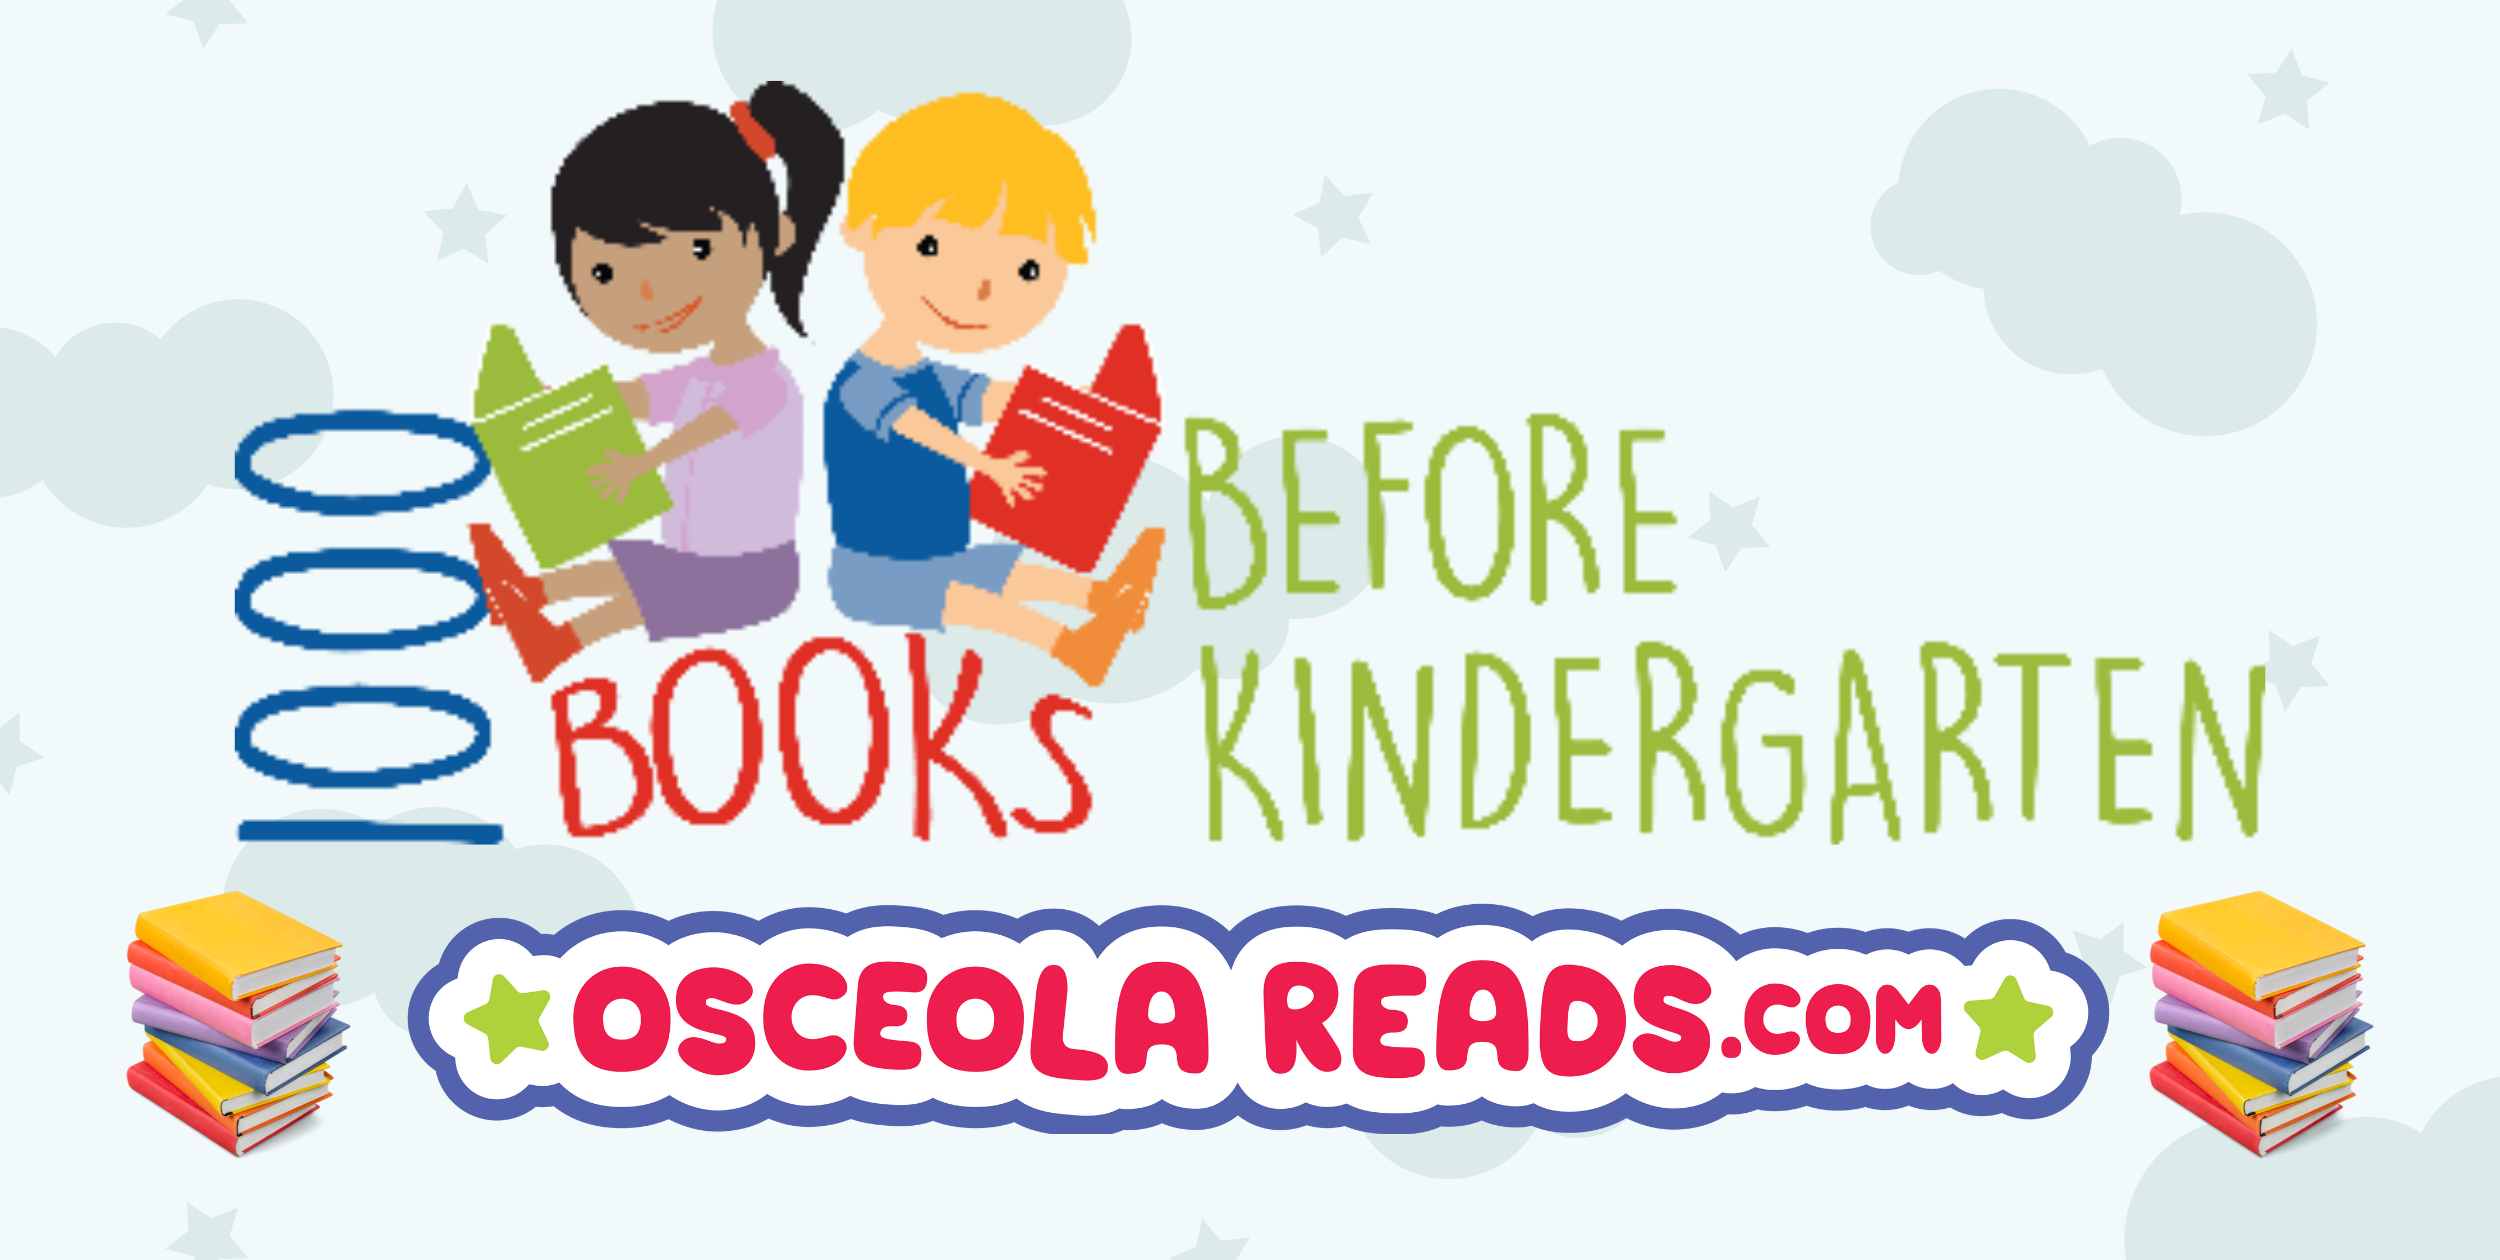 Can Your Child read 1000 Books Before Kindergarten?